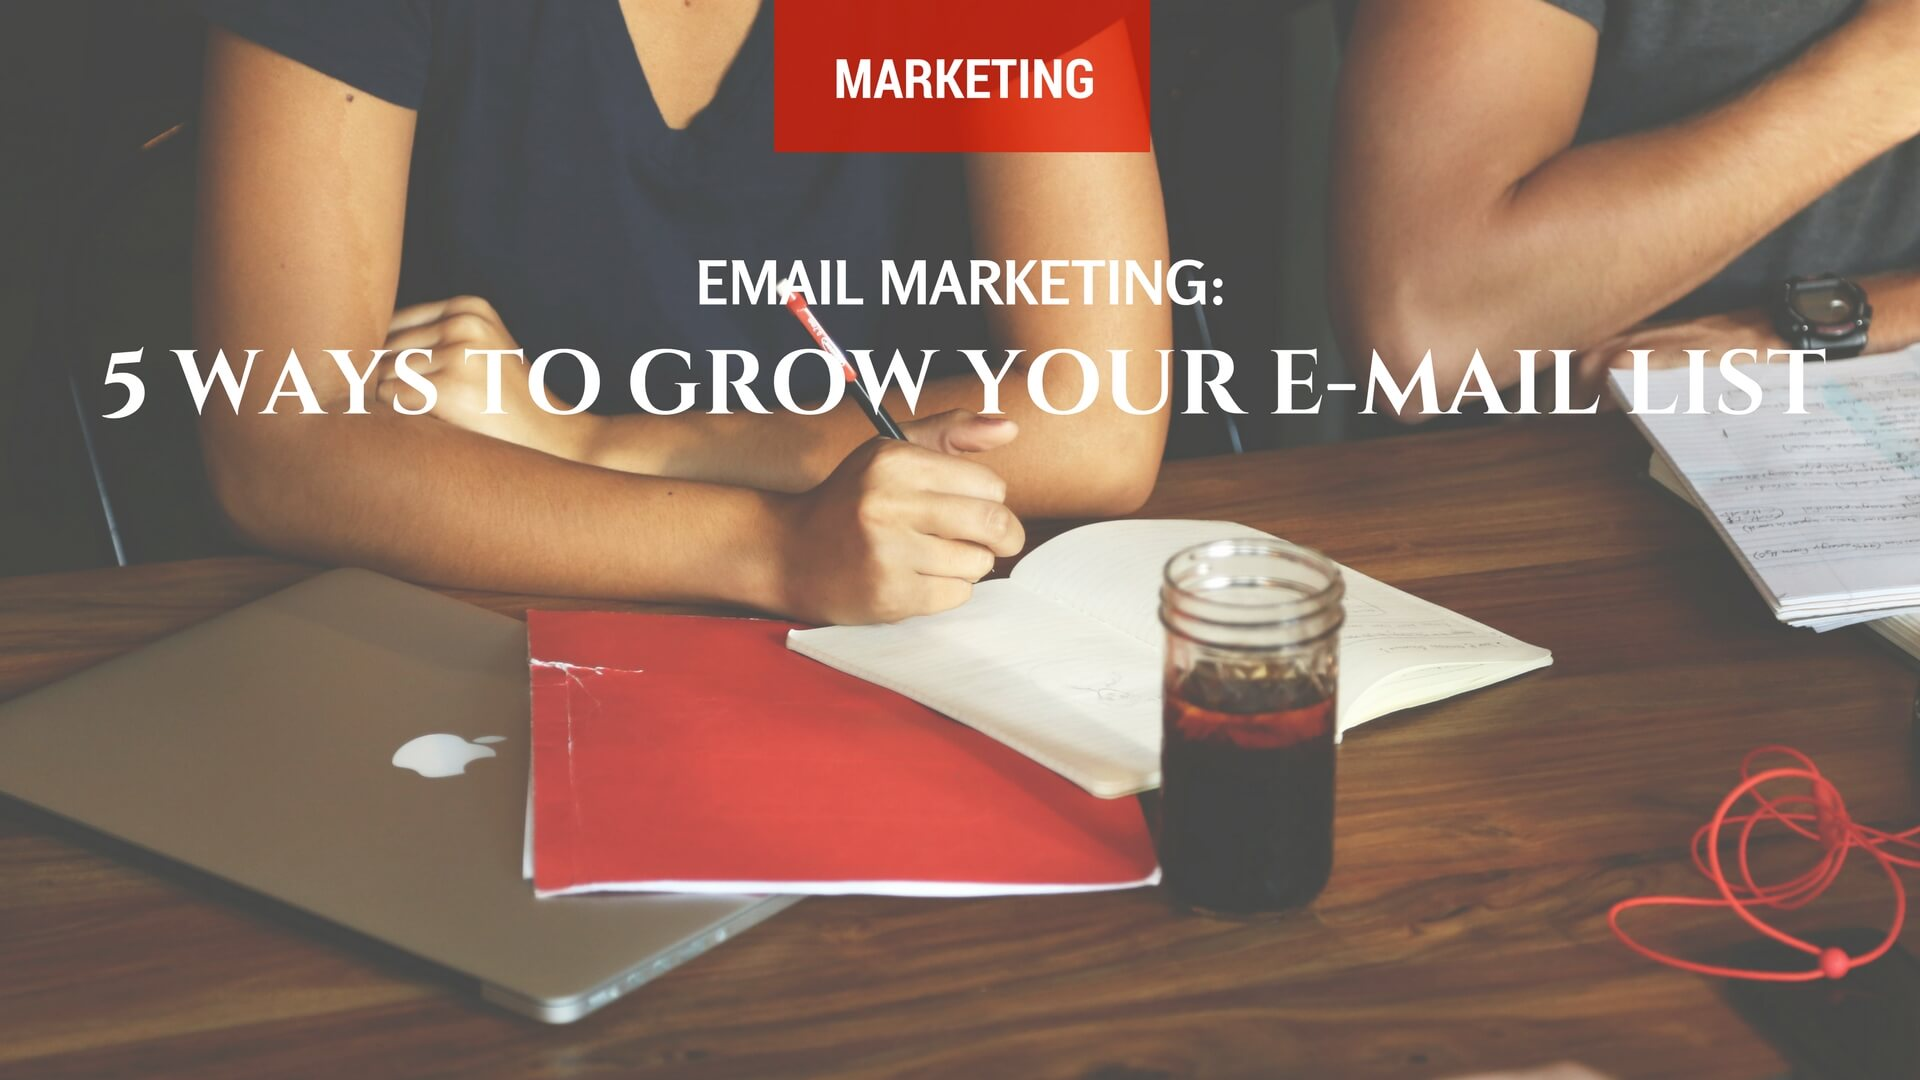 E-mail Marketing: How to Grow your E-mail List